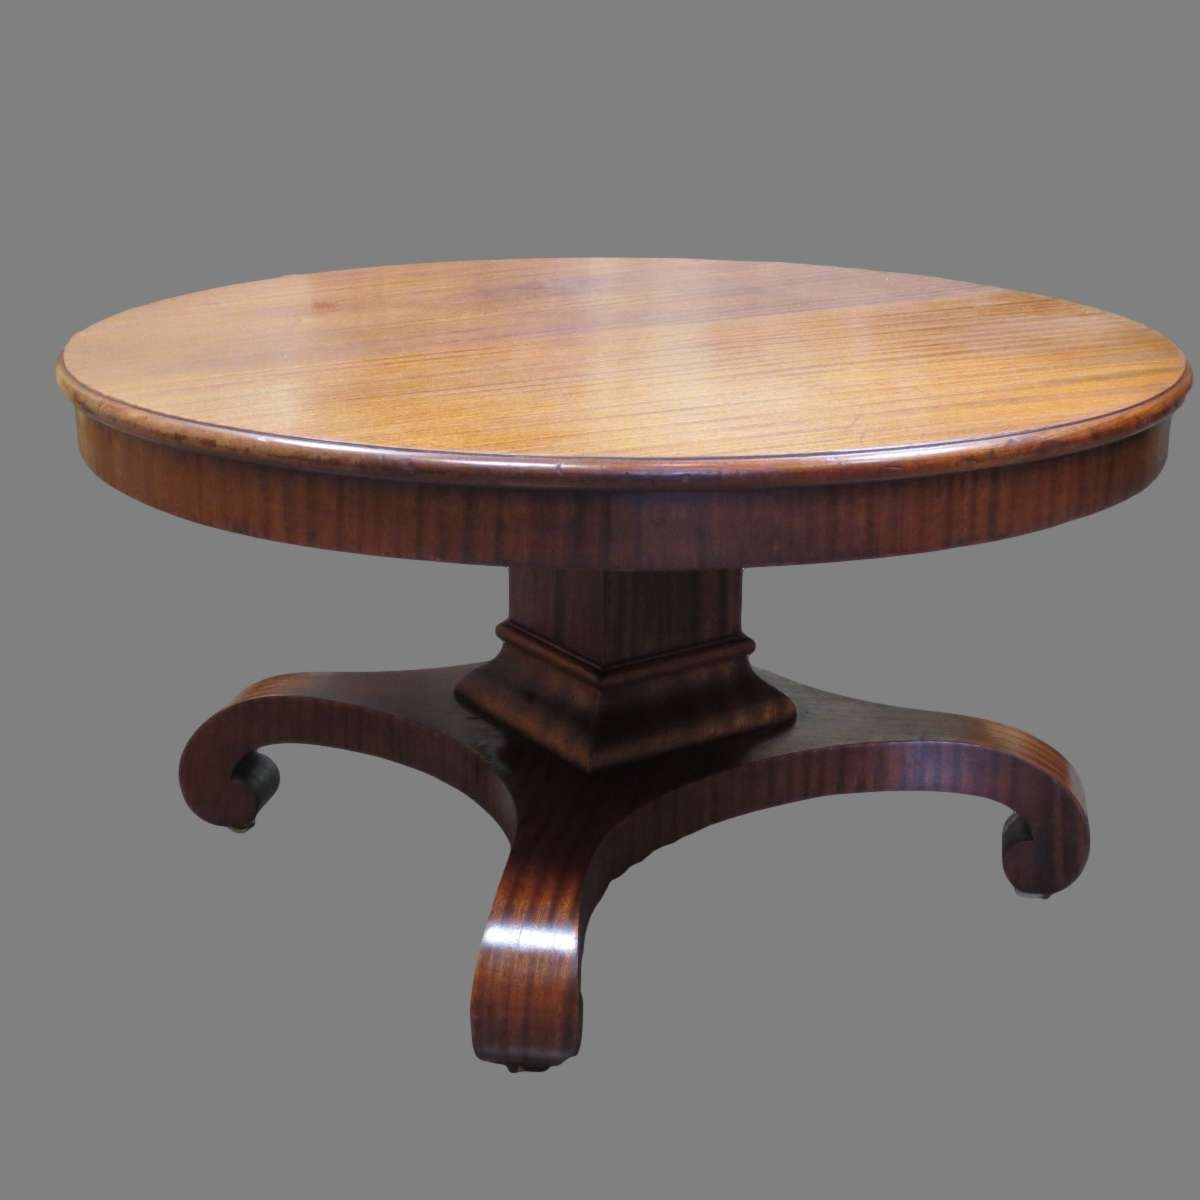 Most Popular Solid Round Coffee Tables With Regard To Coffee Tables Ideas: Surprising Vintage Round Coffee Table (View 13 of 20)